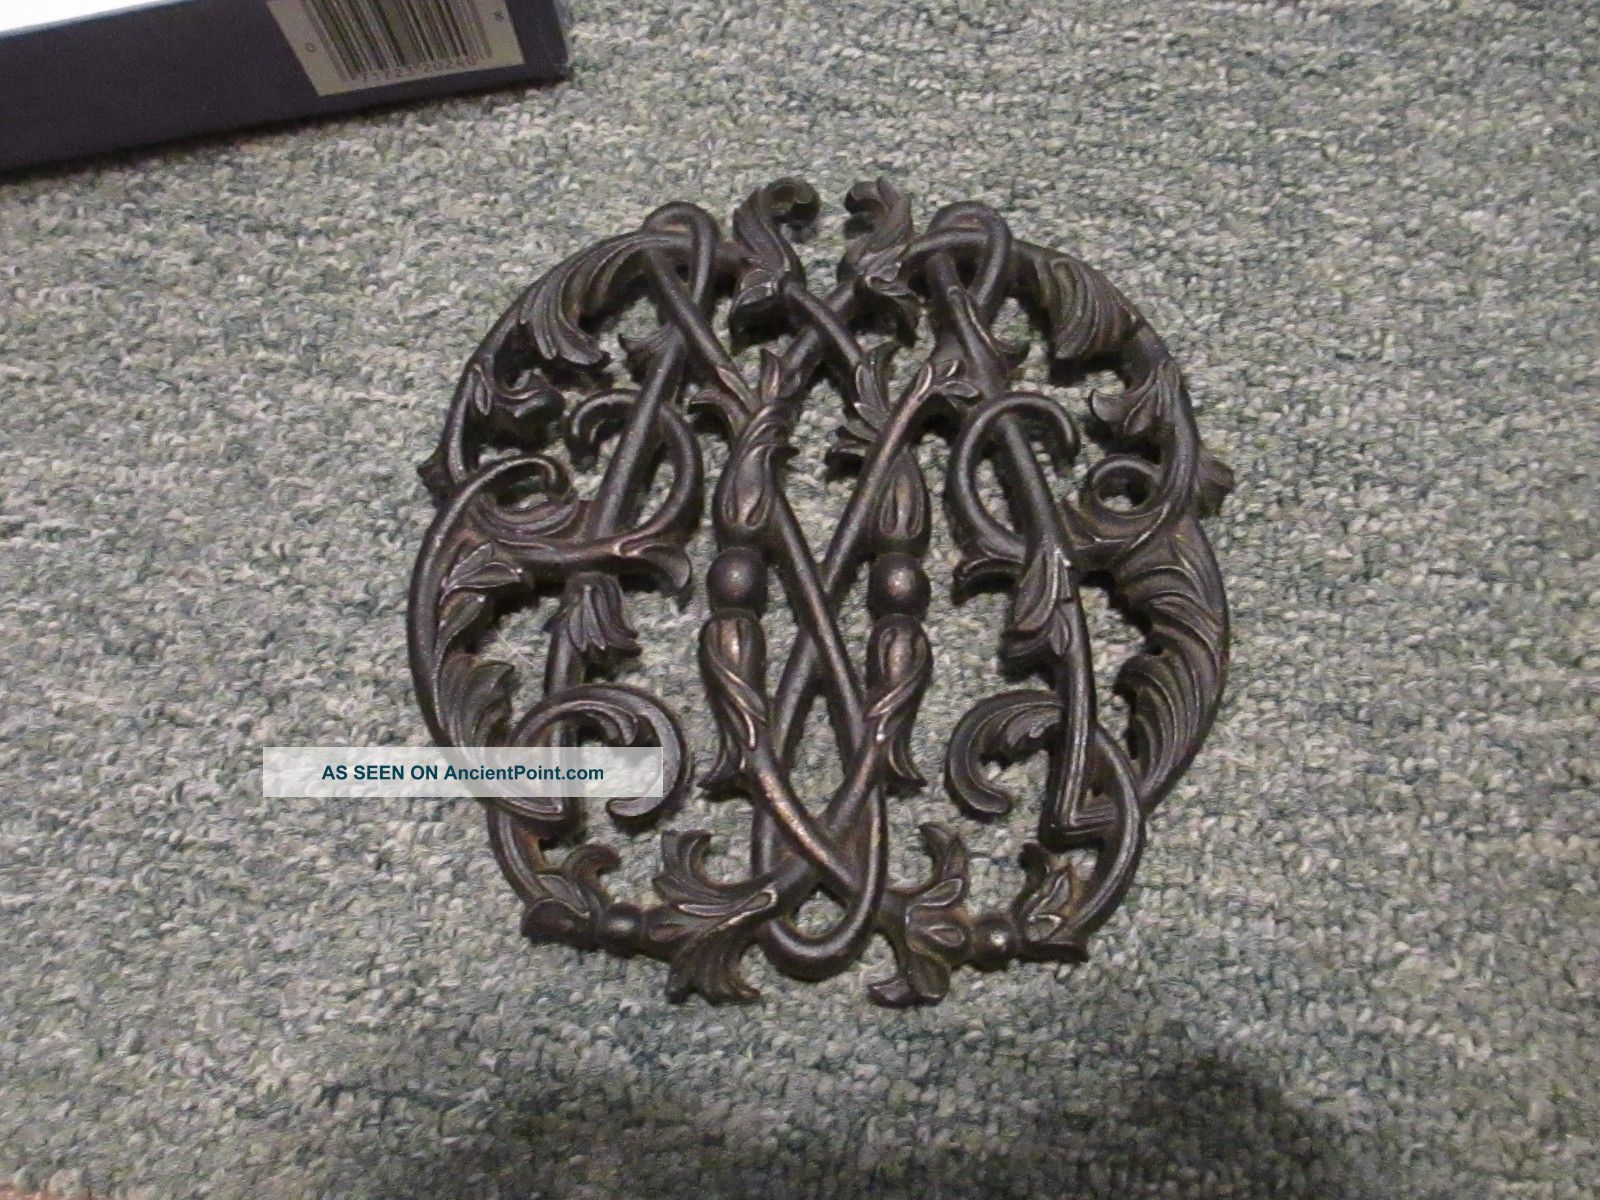 Vtg Black Cast Iron? Colonial Wmsburg Cypher Trivet Grate Cw10 - 14 1950 On Legs Trivets photo